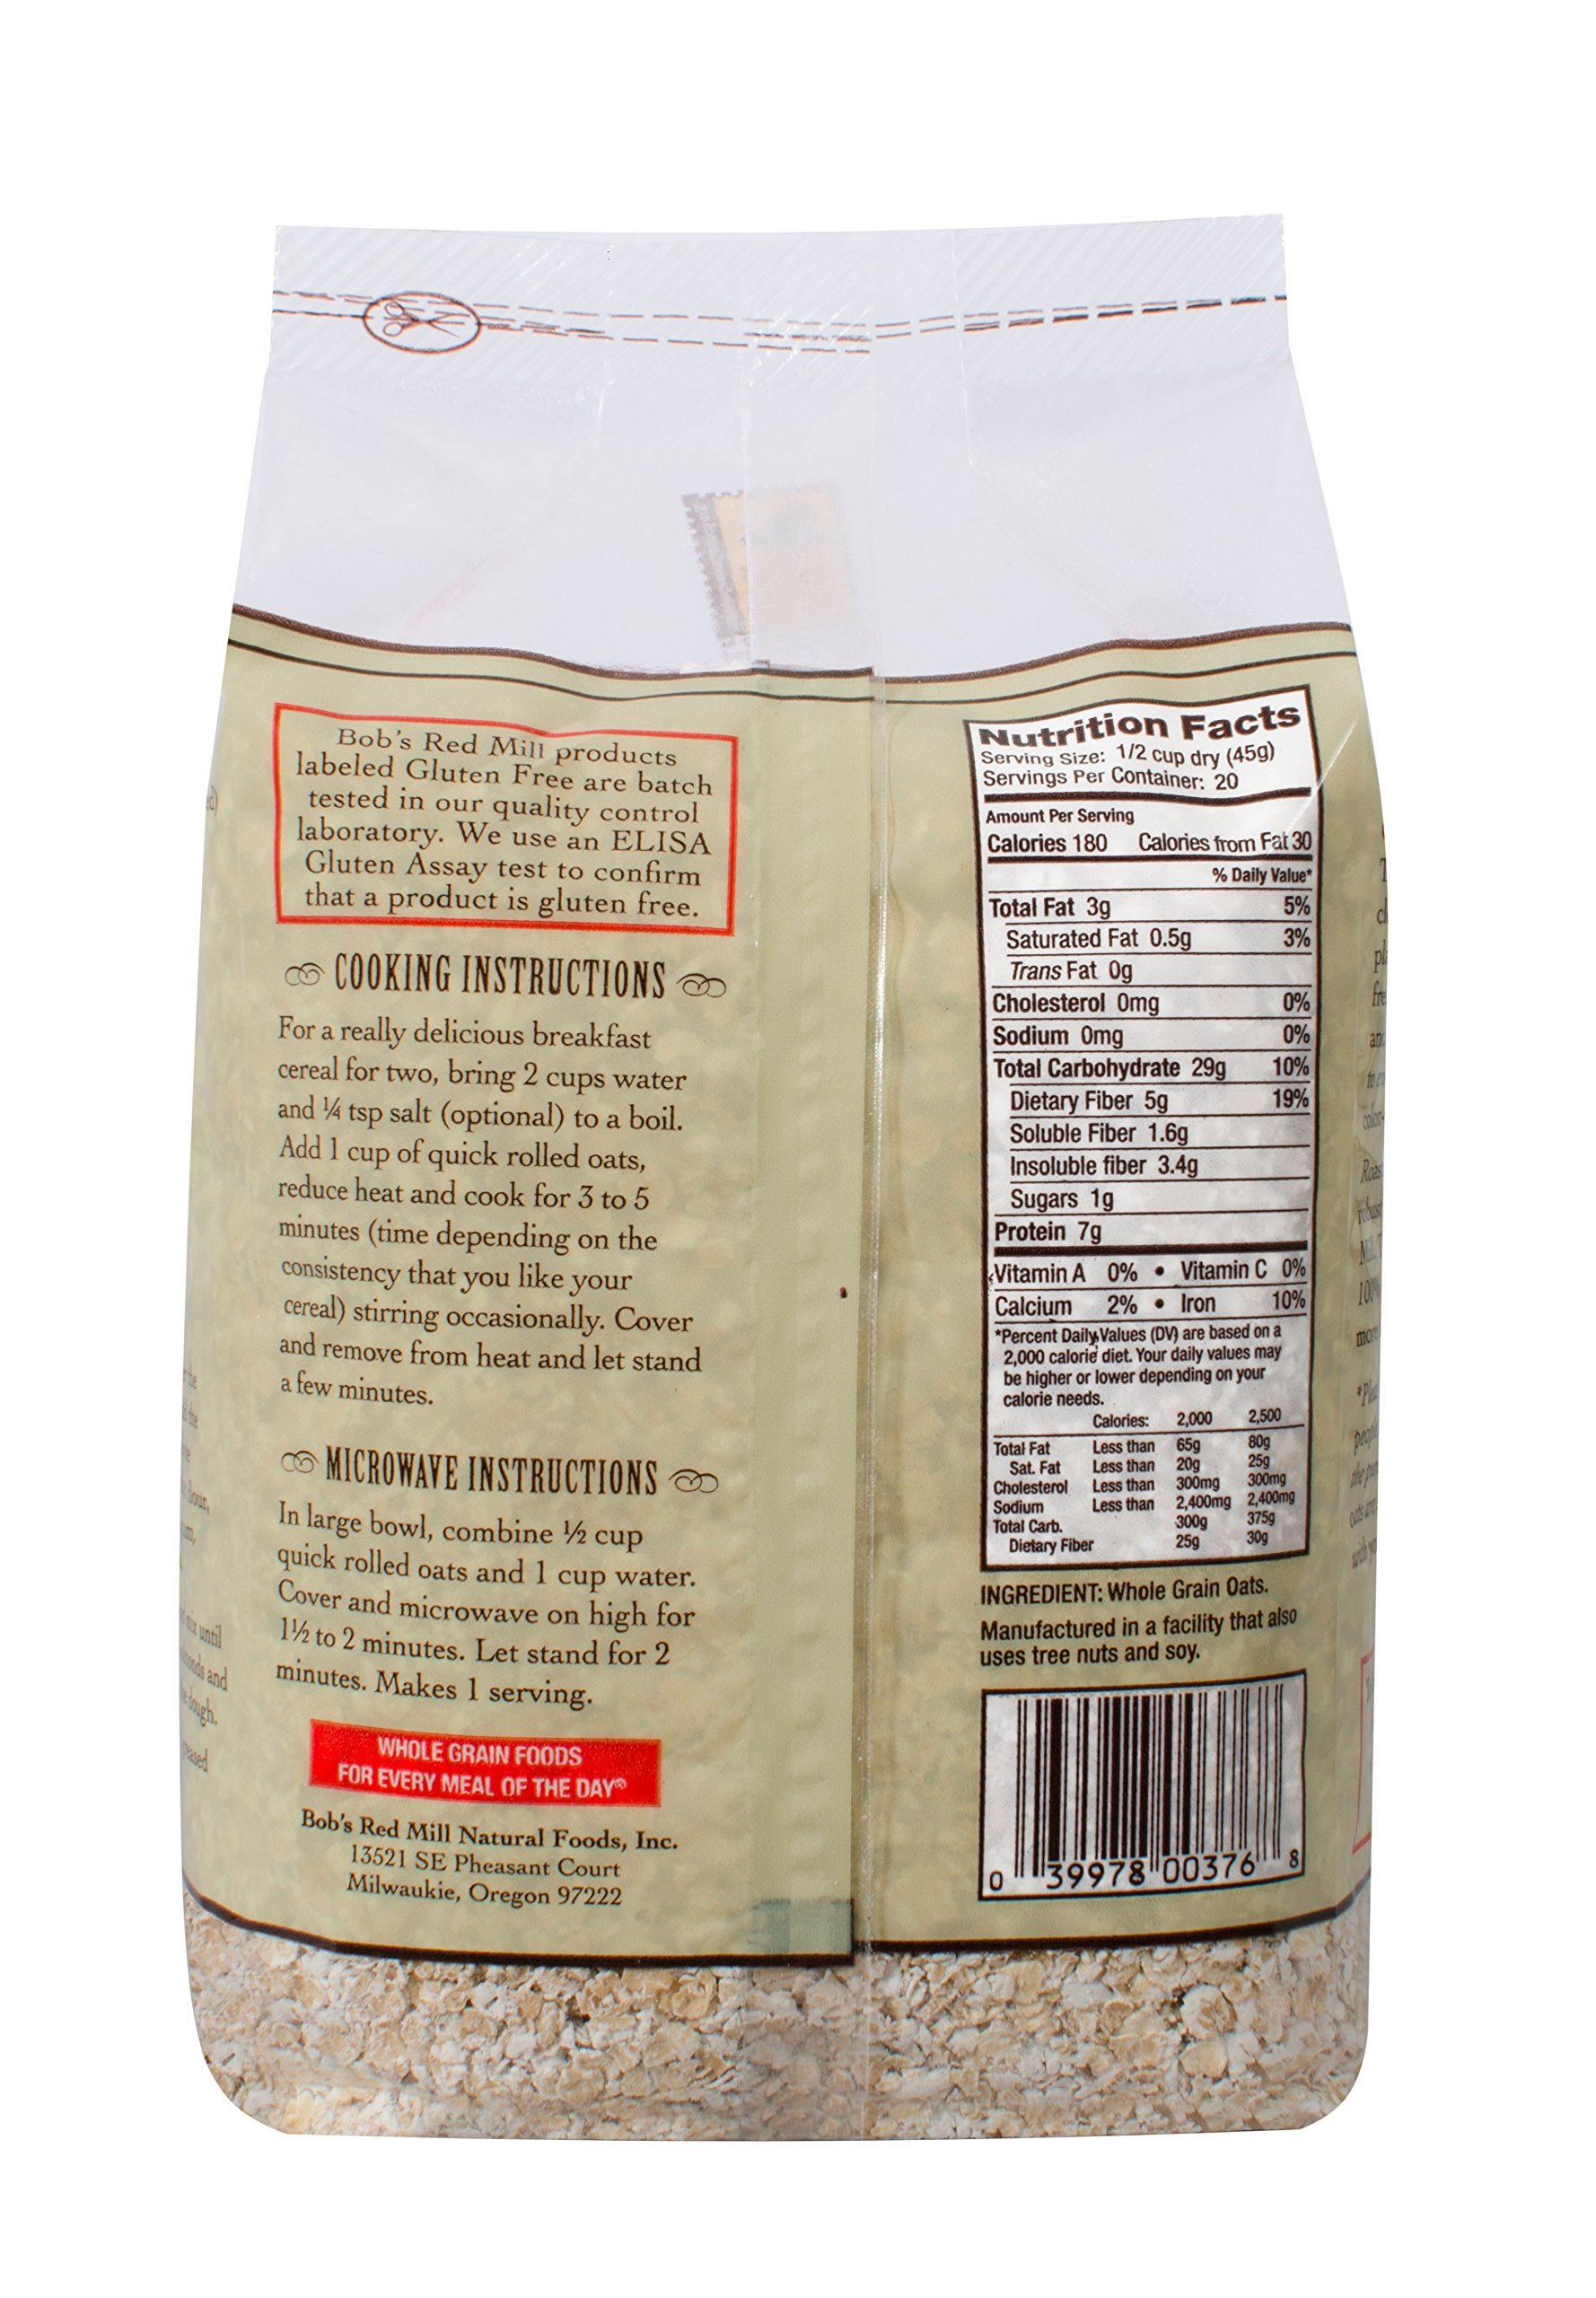 Bob's Red Mill Gluten Free Organic Quick Cooking Rolled Oats, 32 Oz (4 Pack) by Bob's Red Mill (Image #4)